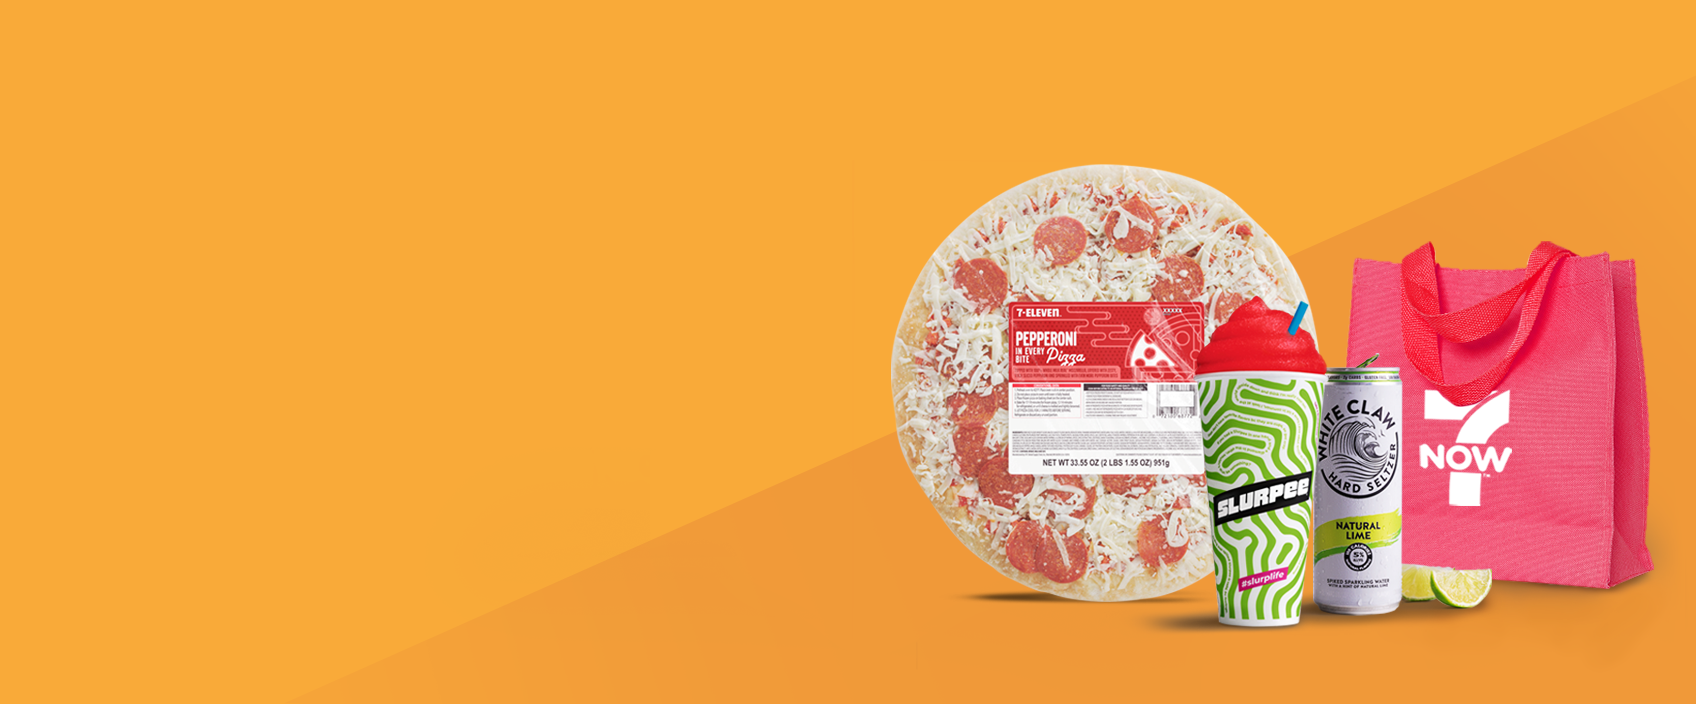 7NOW-delivery-orange-background-pizza-slurpee-white-claw-v2.png